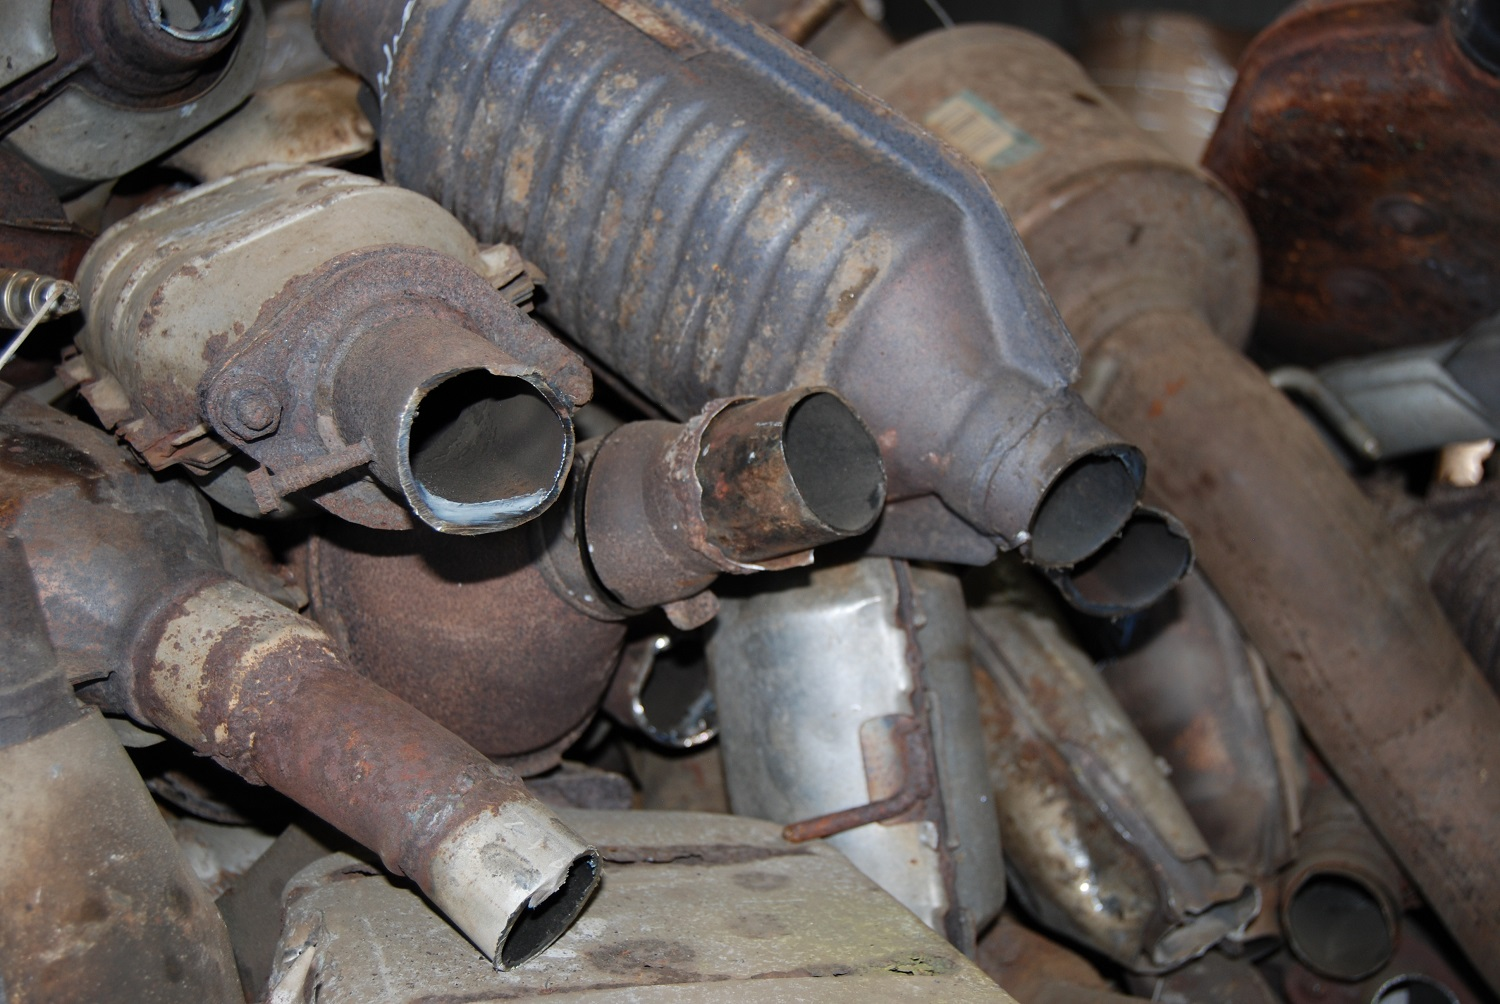 Recyclers' Working Group Hopes to Combat Catalytic Converter Theft